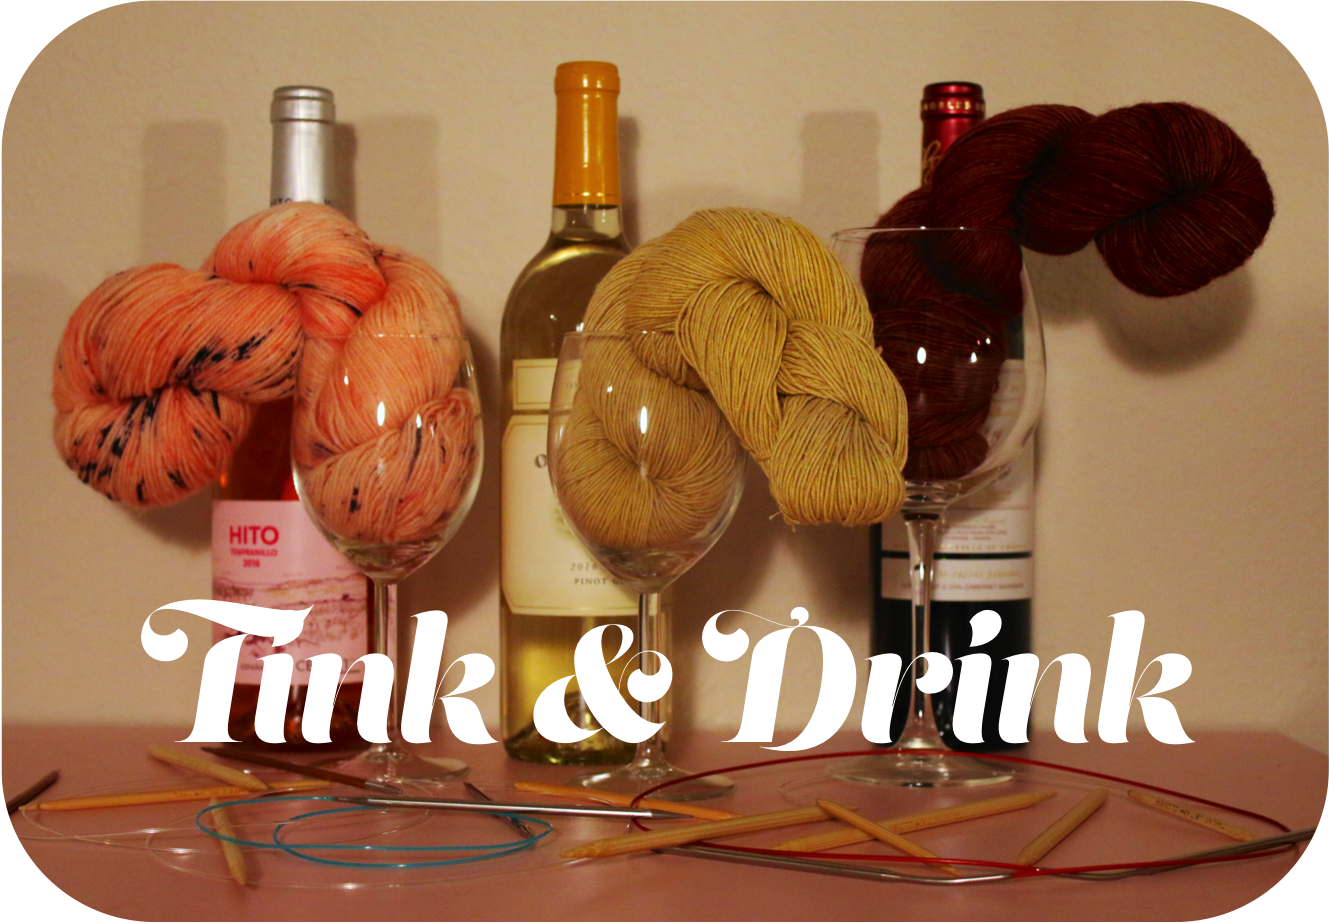 - Every Thursday night, Tricot is open late until 8:00 for Tink & Drink wine night! We'll have wine for those over 21, or you're welcome to bring your own bottle. Come hang out, knit, have a drink, and relax! (Complex knits requiring lots of concentration not recommended...)